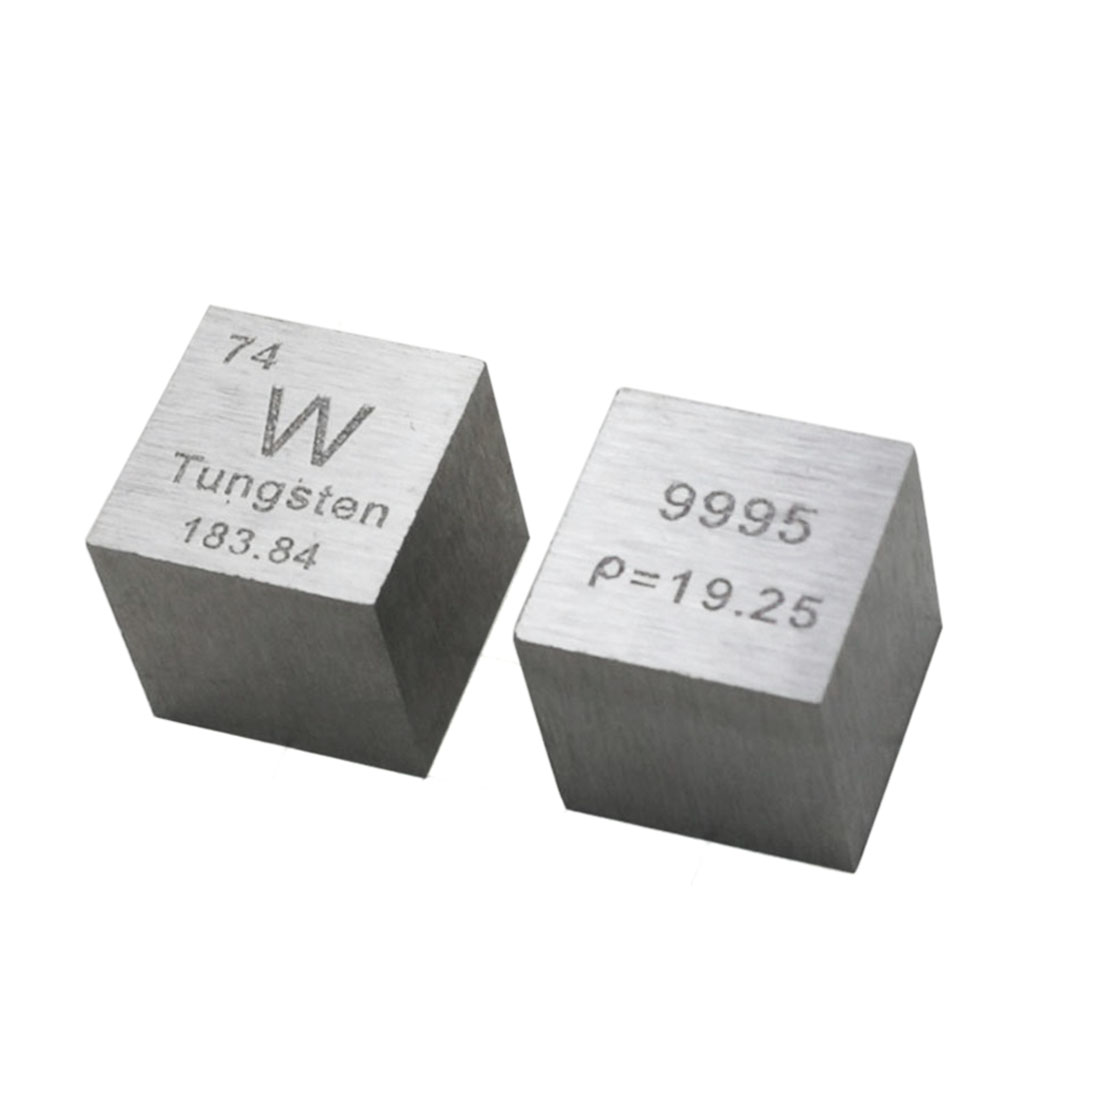 10 X 10 X 10mm High Pure Wiredrawing Wolfram Periodic Table Of Elements Cube For Research Lab Industrial Collection(W≥99.9%)